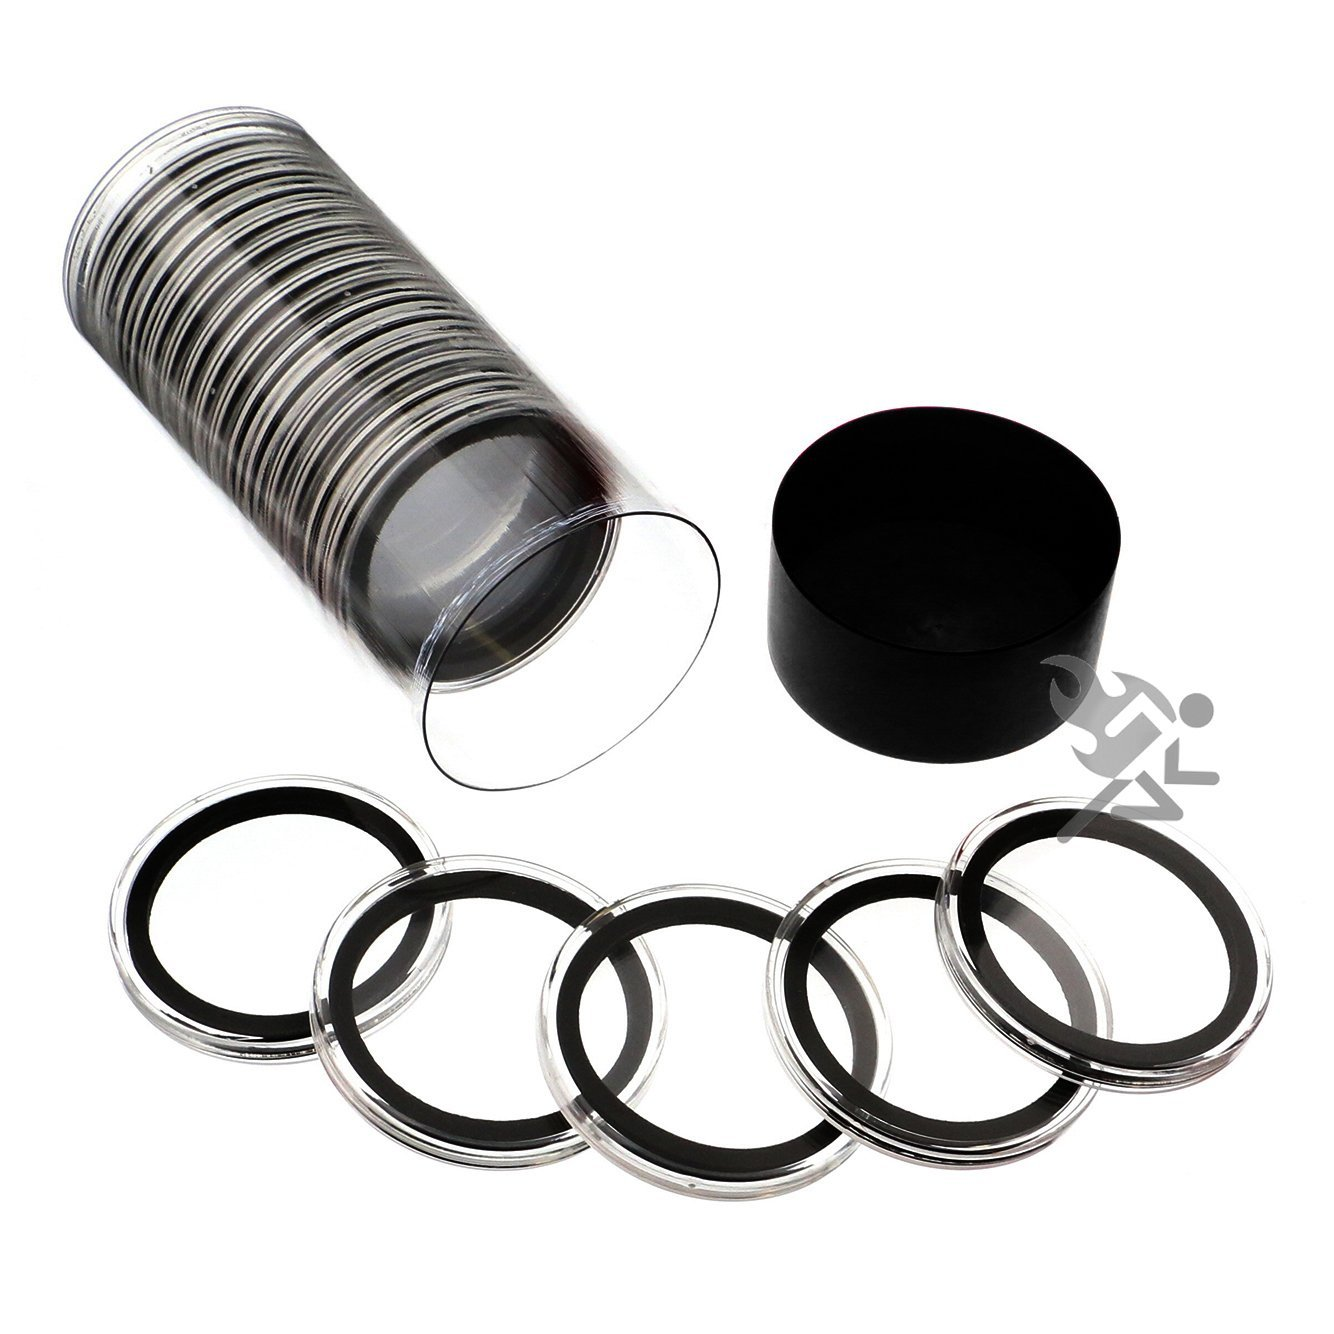 Black Lid Capsule Tube /& 20 Air-Tite 40mm Black Ring Coin Holders for 1oz Silver Eagles